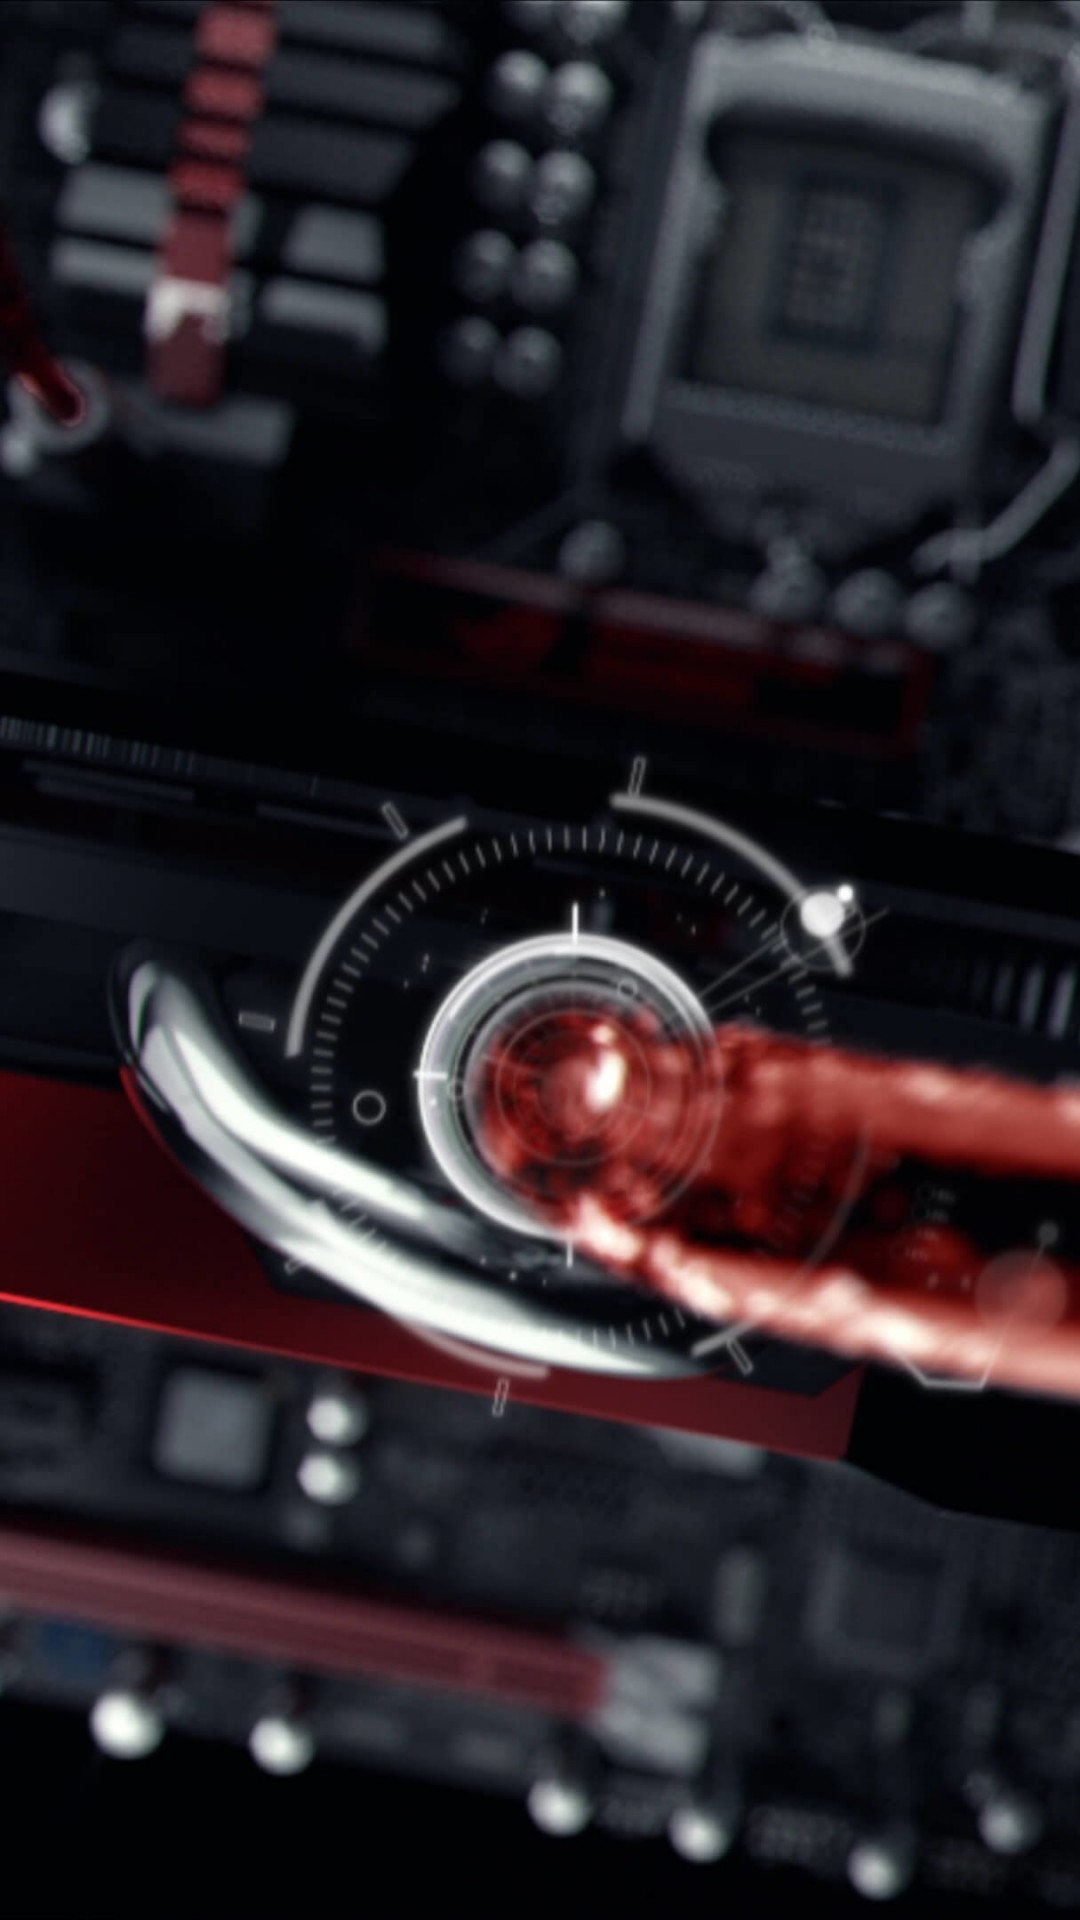 ASUS ROG Poseidon Liquid Cooling Wallpaper for SAMSUNG Galaxy S4